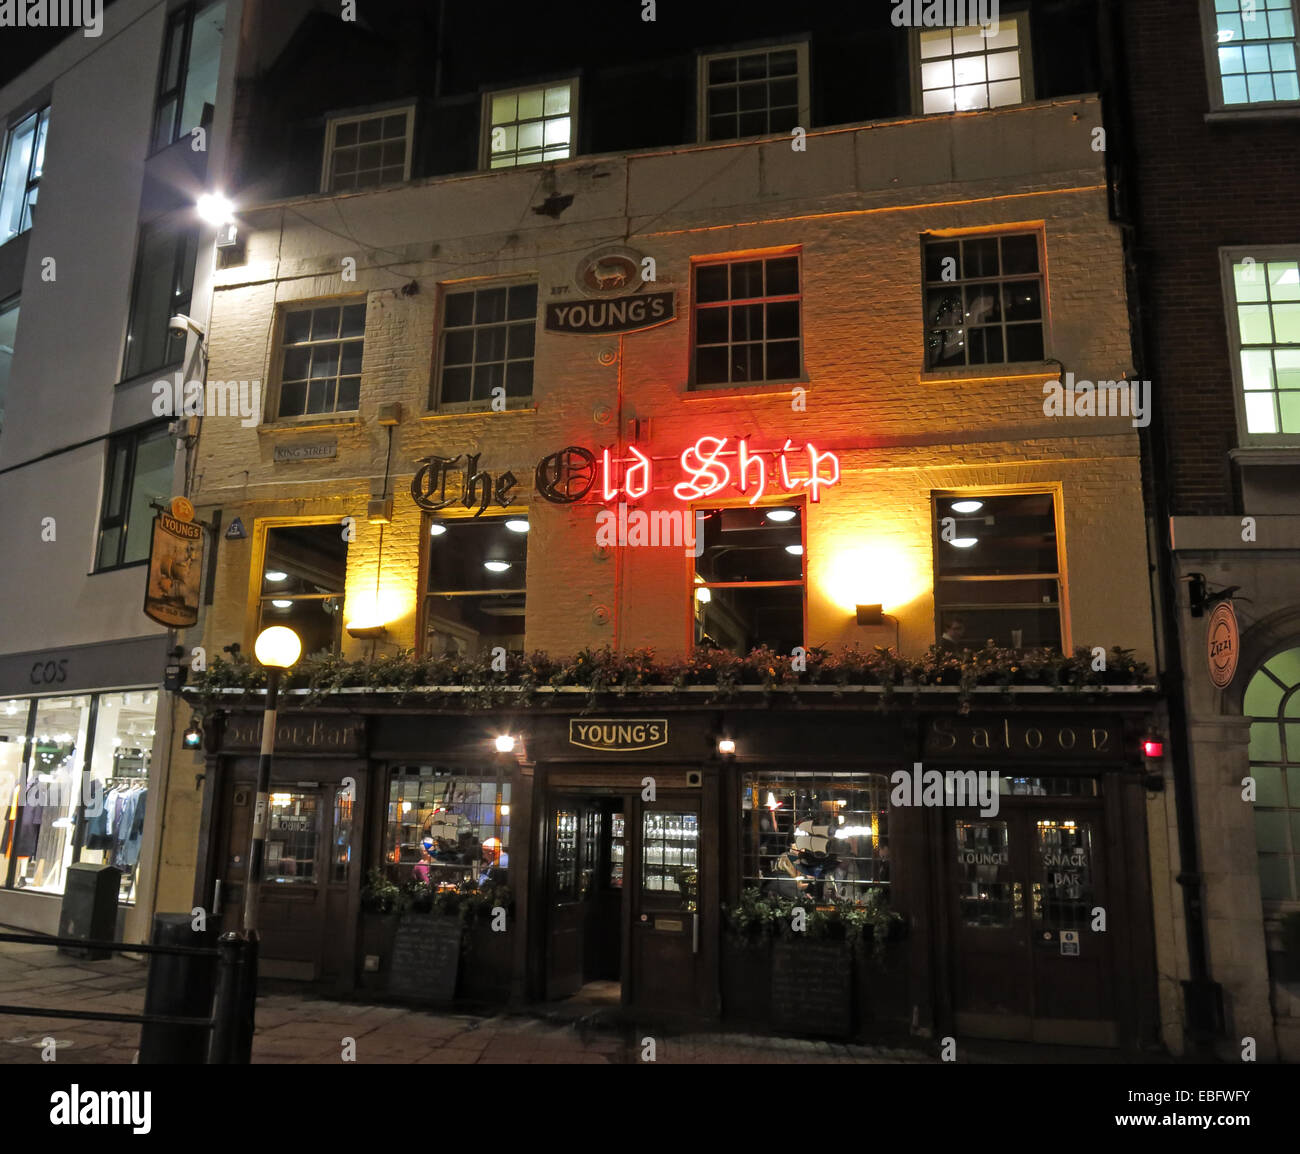 dusk,bar,pubs,bars,The Old Ship Pub,Youngs,Richmond,London at Night,young,brewery,youngs brewery,food,drink,tourist,tourists,tourism,traditional,broken neon sign,broken,neon,sign,ld ship,boat,lighting,lit,gotonysmith,pubs,bars,of,London,classic,tourist,attraction,travel,vacation,Pubs Of London,must see